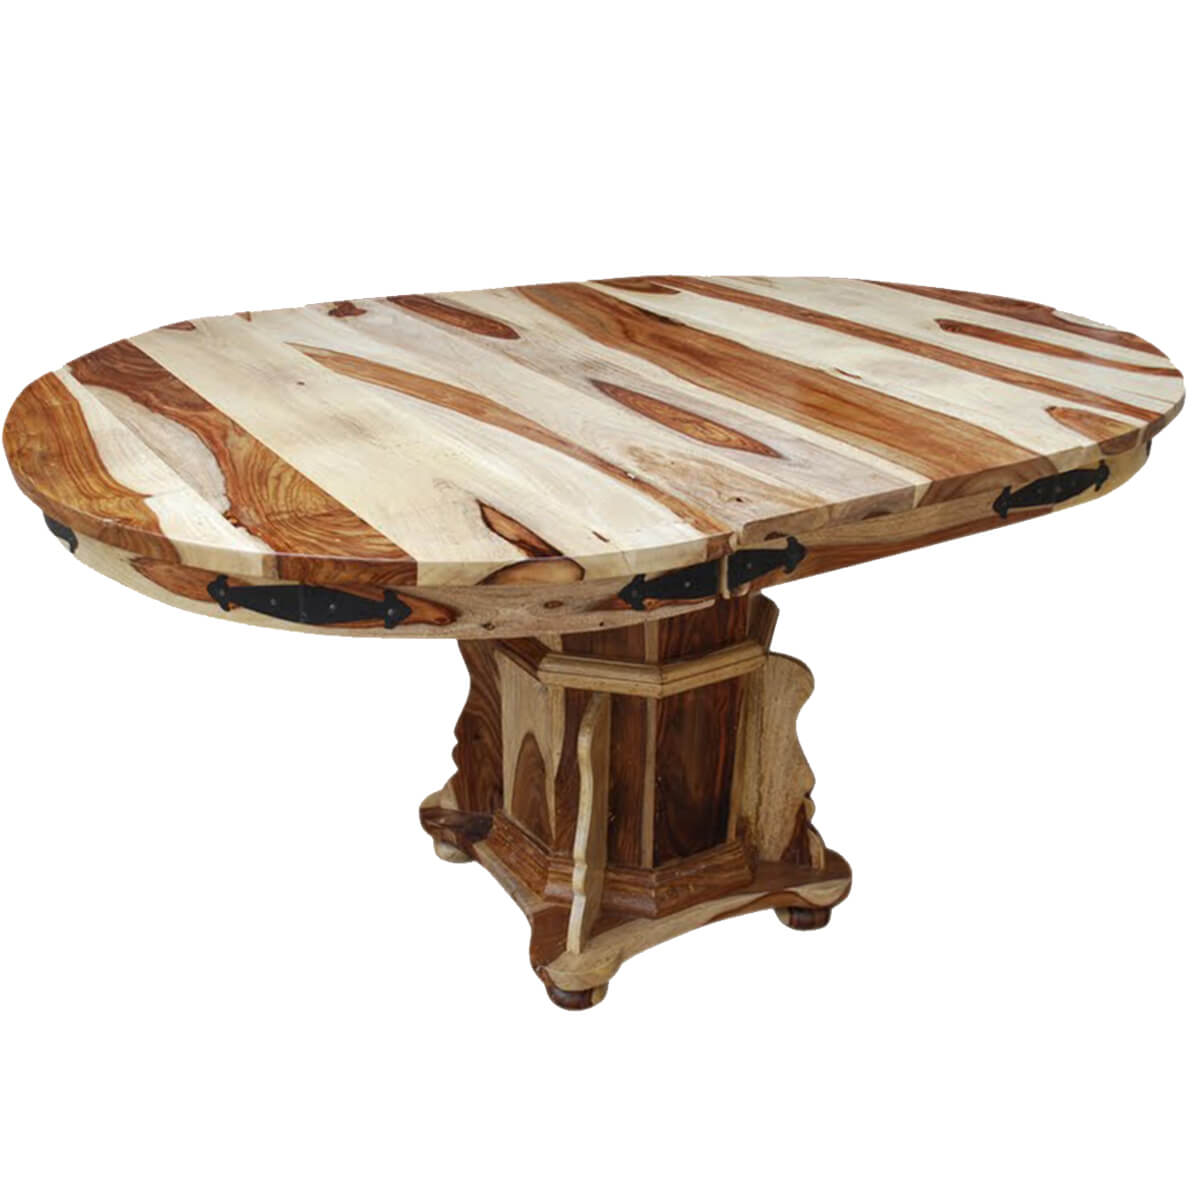 Dallas ranch solid wood pedestal round dining table w for Solid wood round tables dining